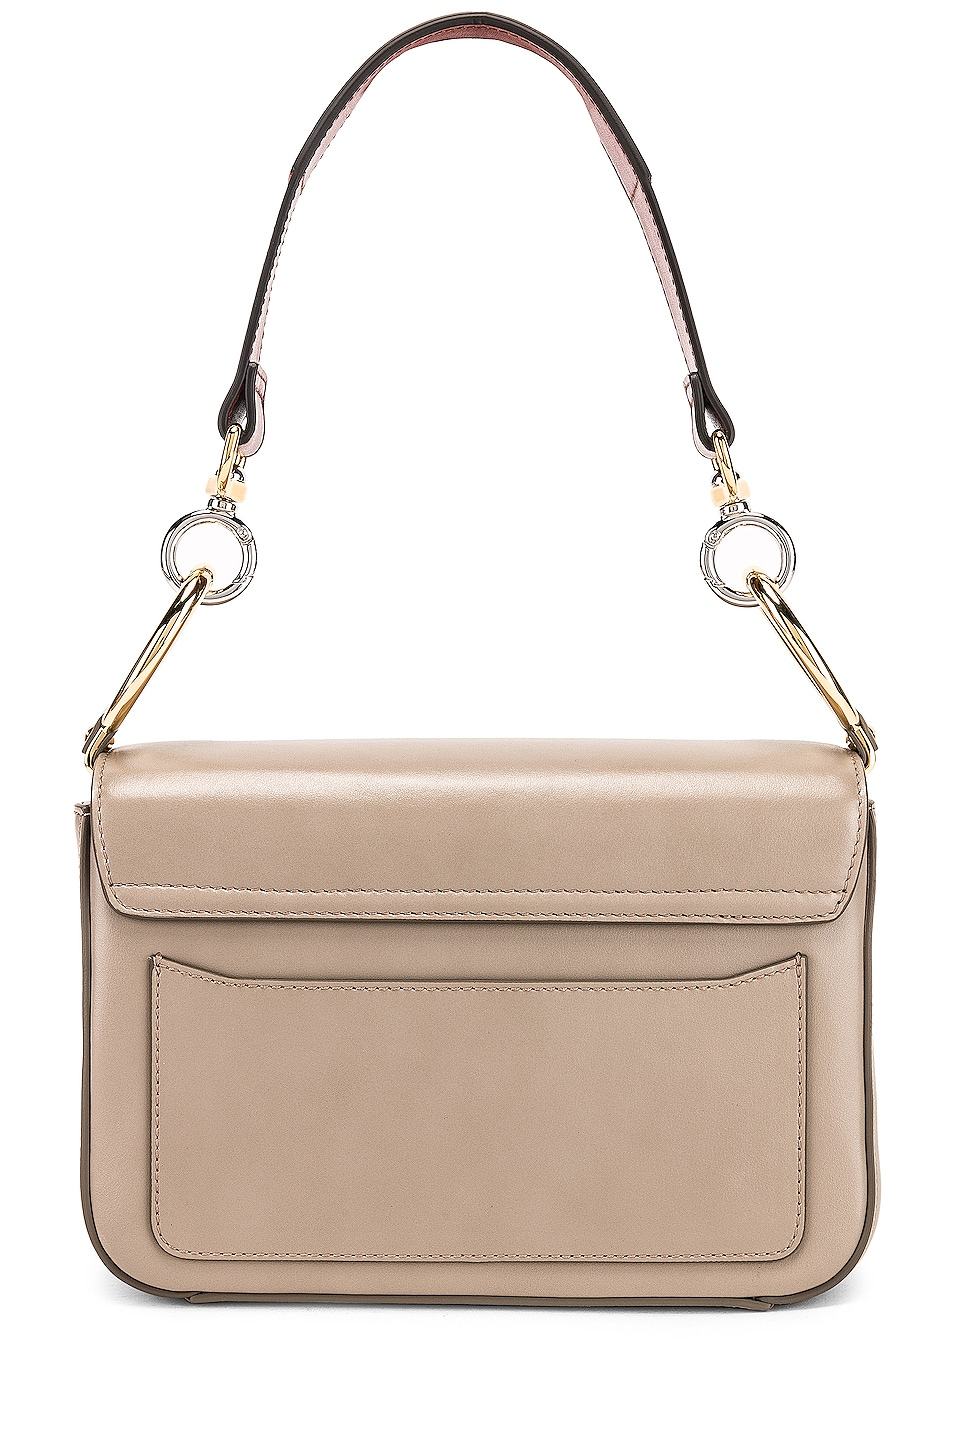 Image 3 of Chloe Chloe C Small Suede-Trimmed Leather Shoulder Bag in Motty Grey